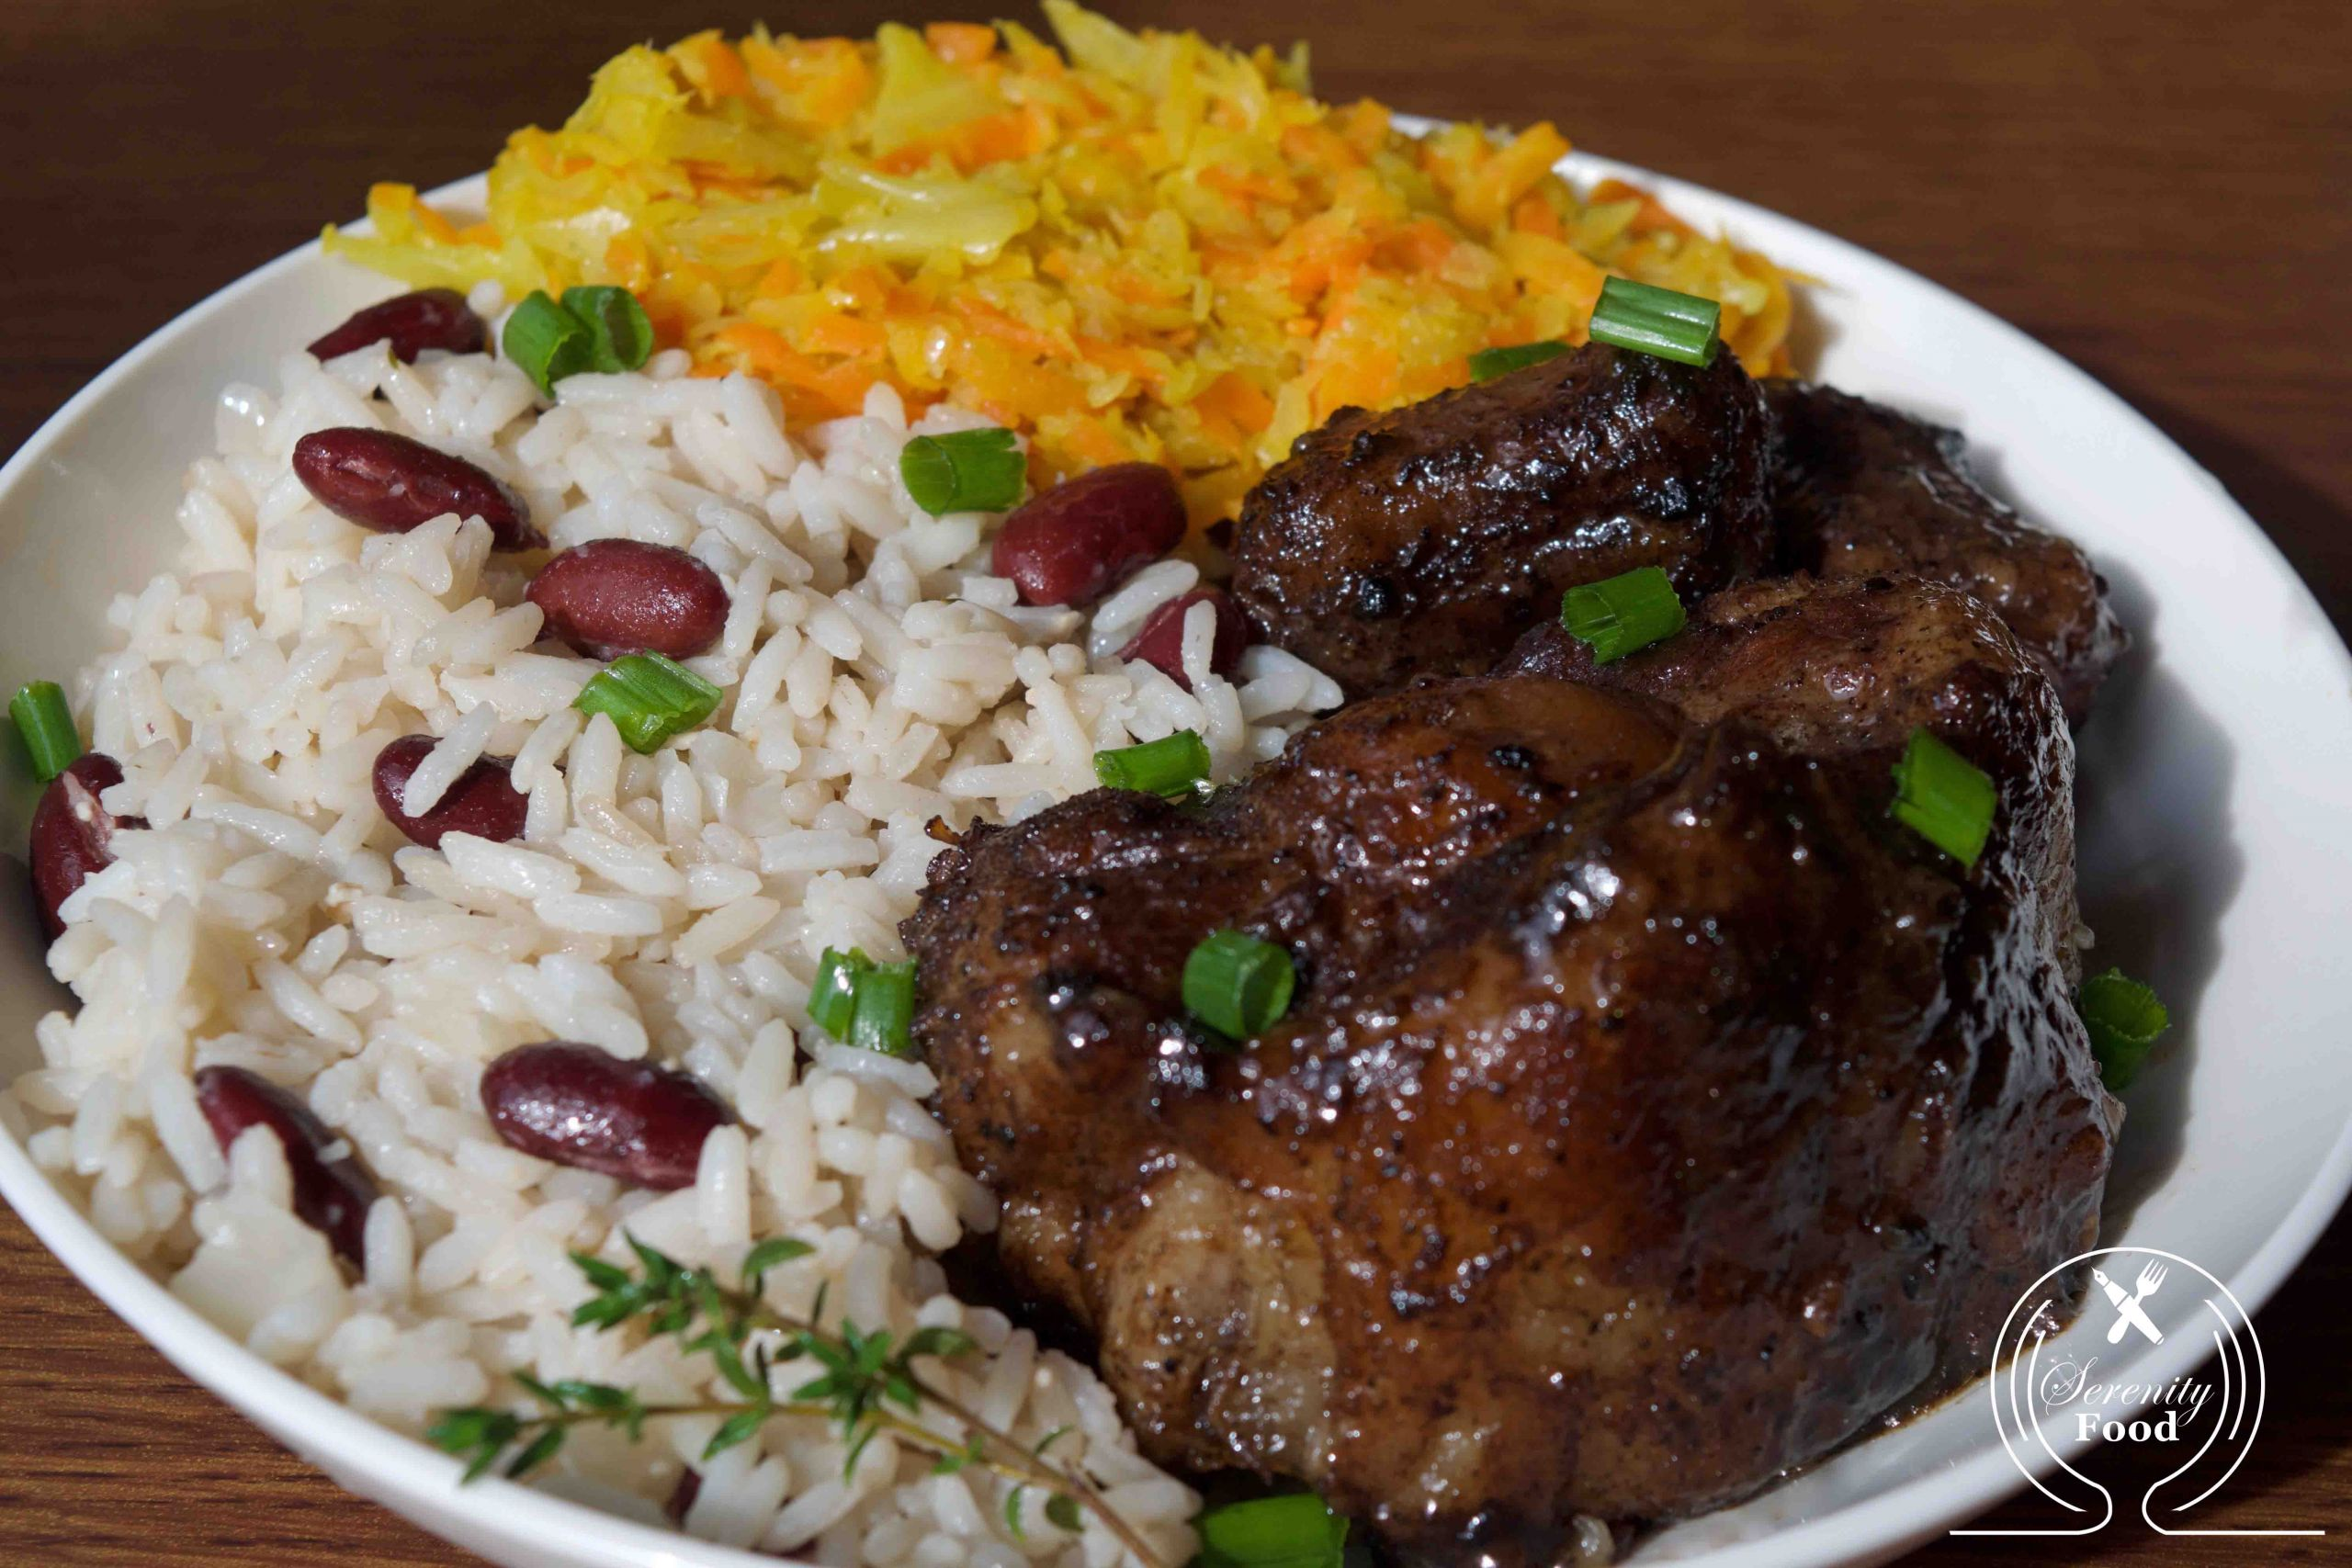 Jamaican Oxtail Stew Recipe  Jamaican Oxtail Pressure Cooker Method Serenity Food